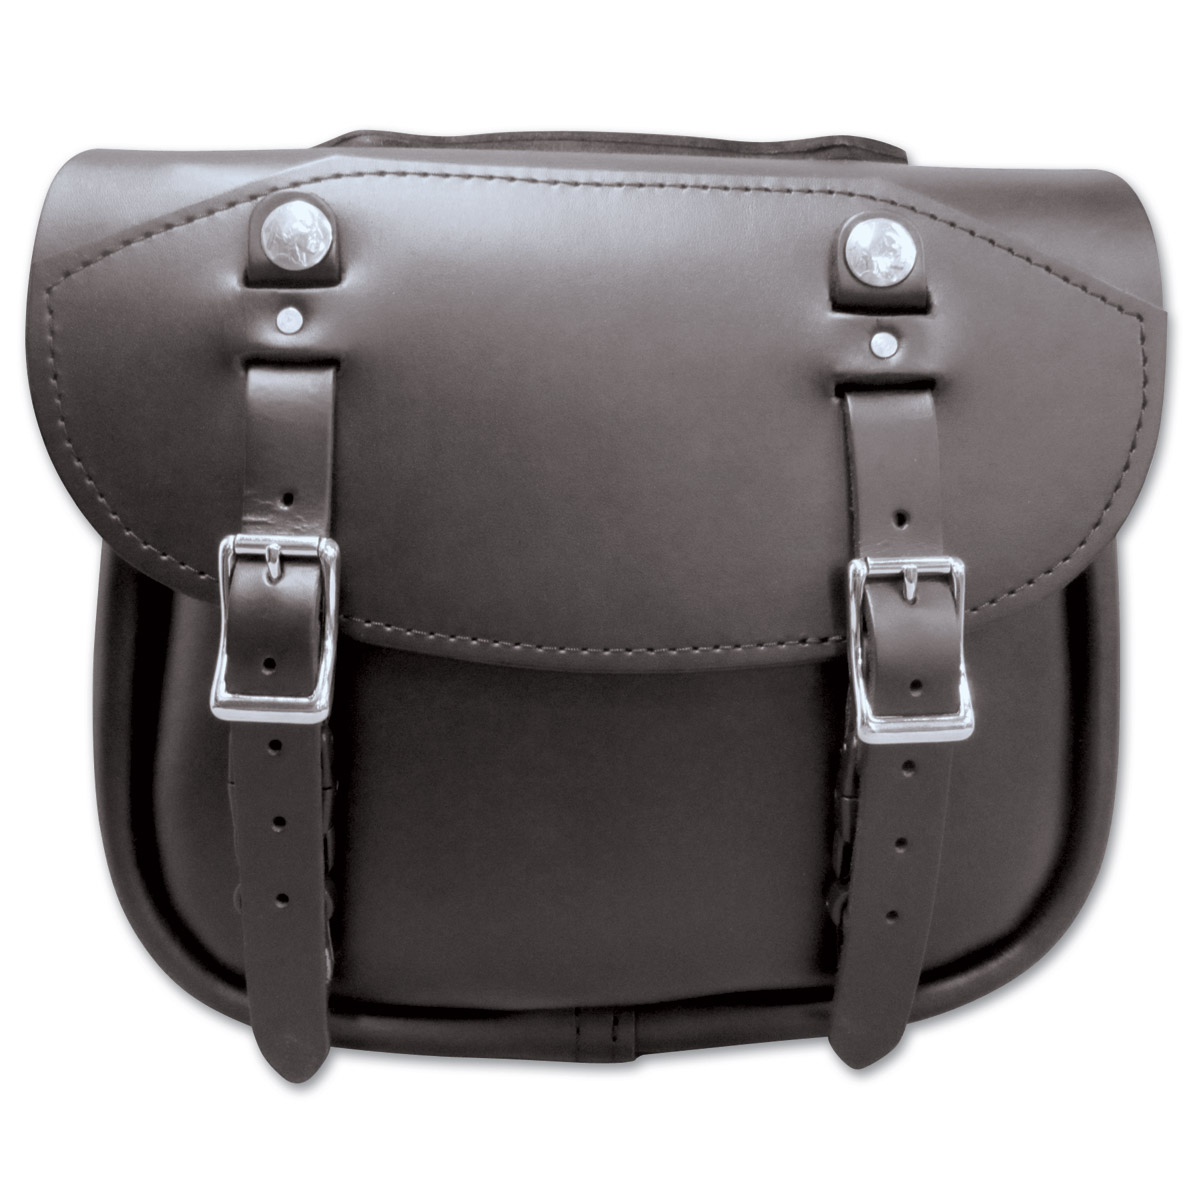 Leatherworks, Inc. Saddlebags